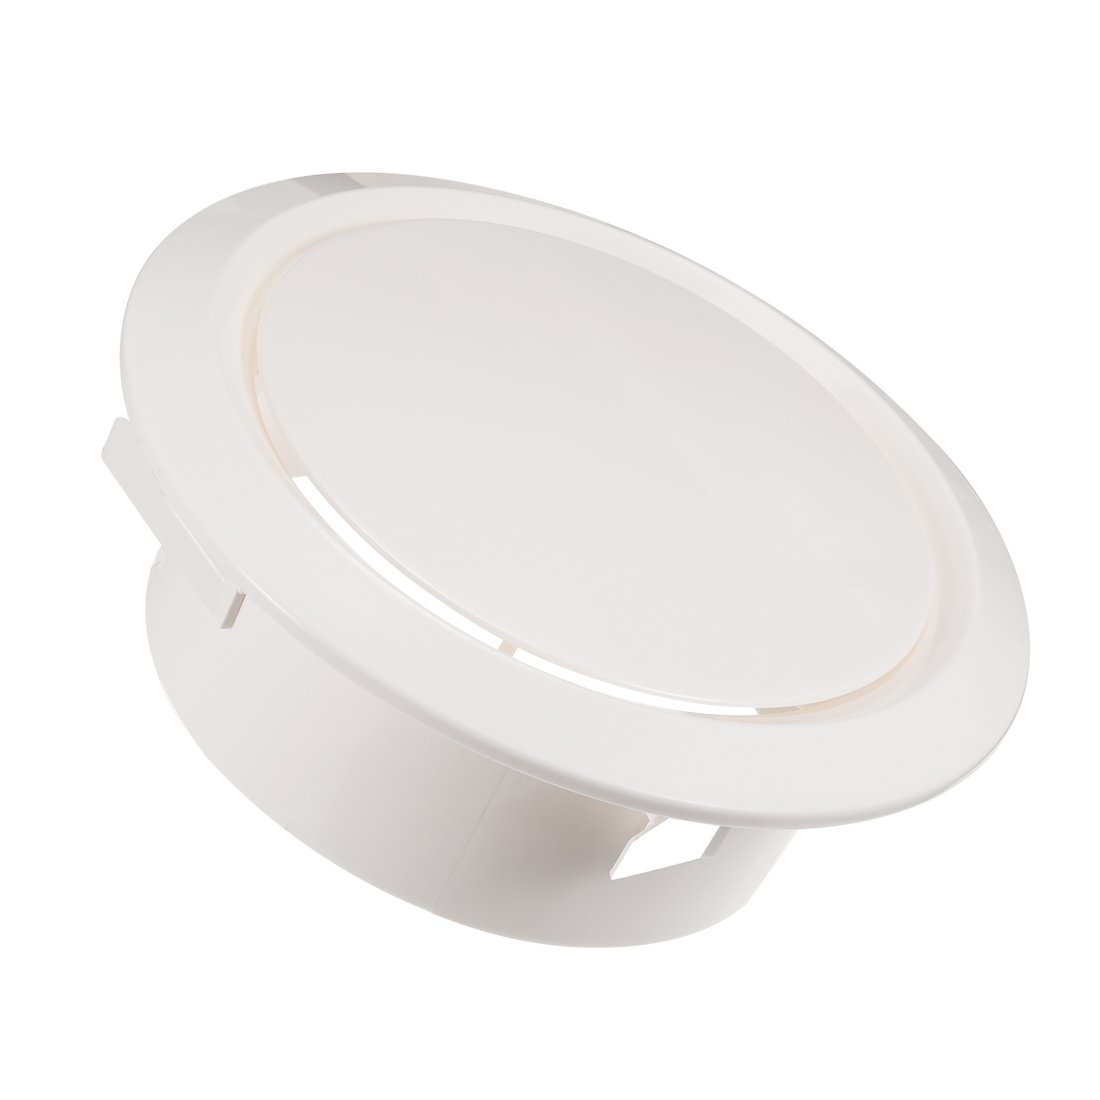 uxcell 8 Inch Air Vent Circular ABS White Cover Adjustable Exhaust Vent Fit for Bathroom Office Kitchen Ventilation